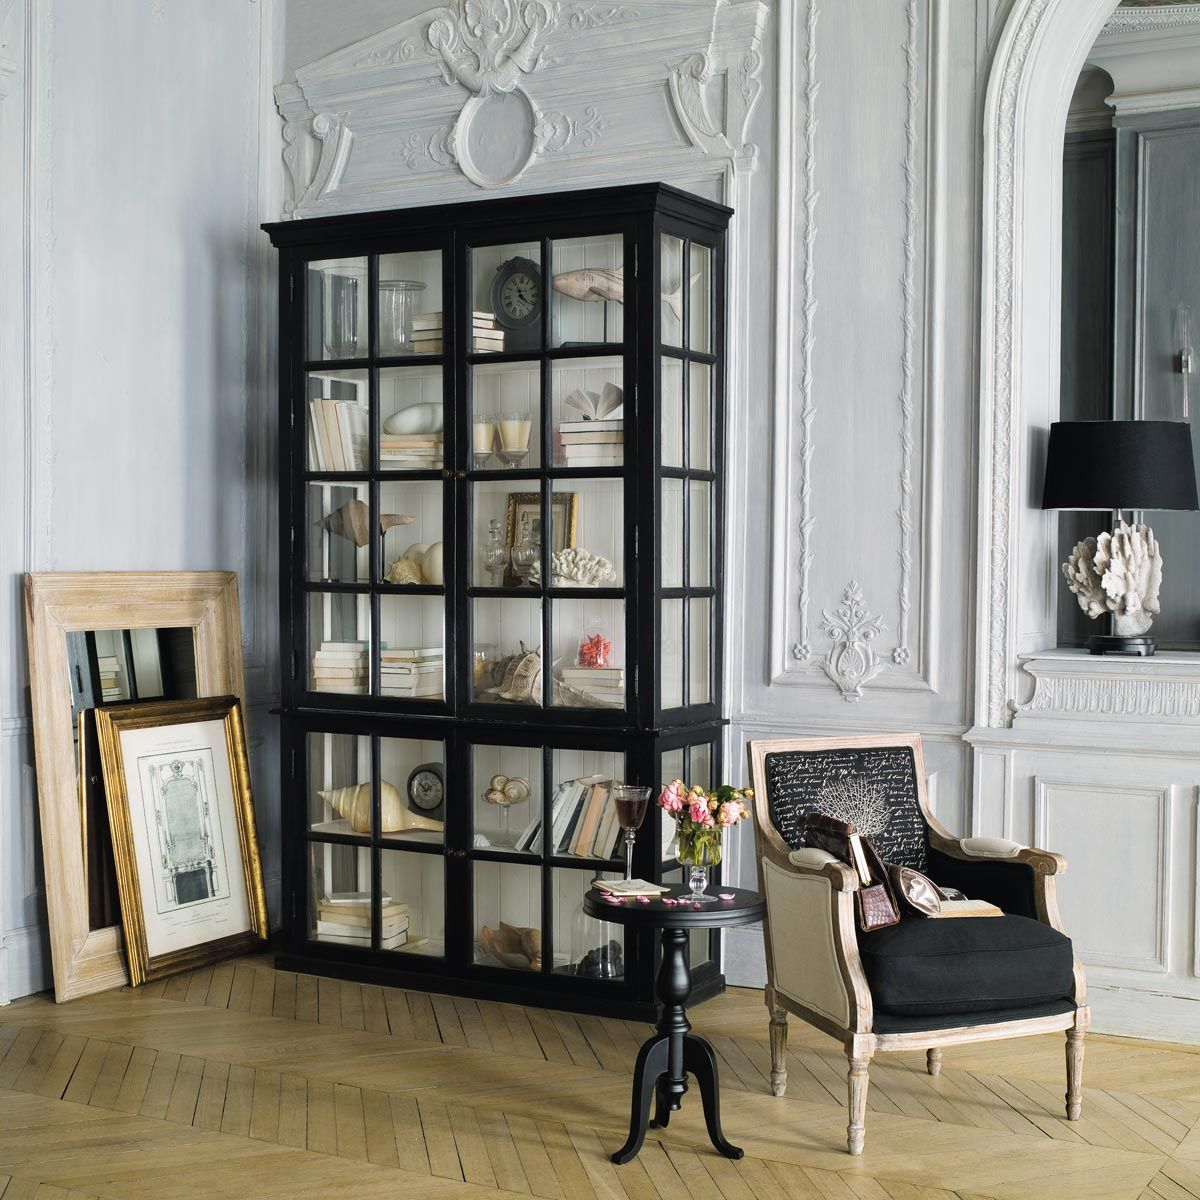 b cherregal verglast schwarz descartes maisons du monde. Black Bedroom Furniture Sets. Home Design Ideas